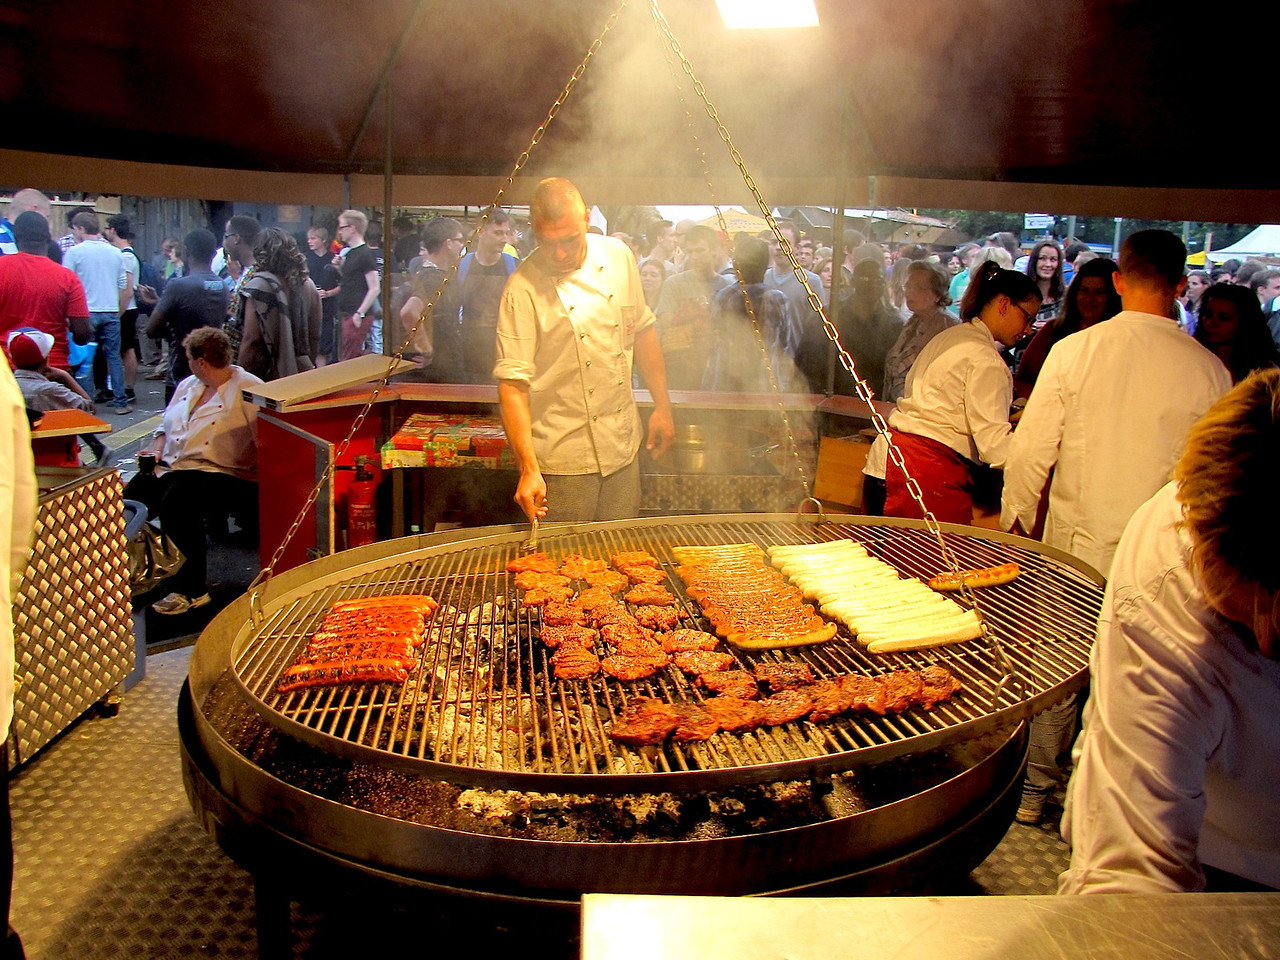 a swinging meat grill